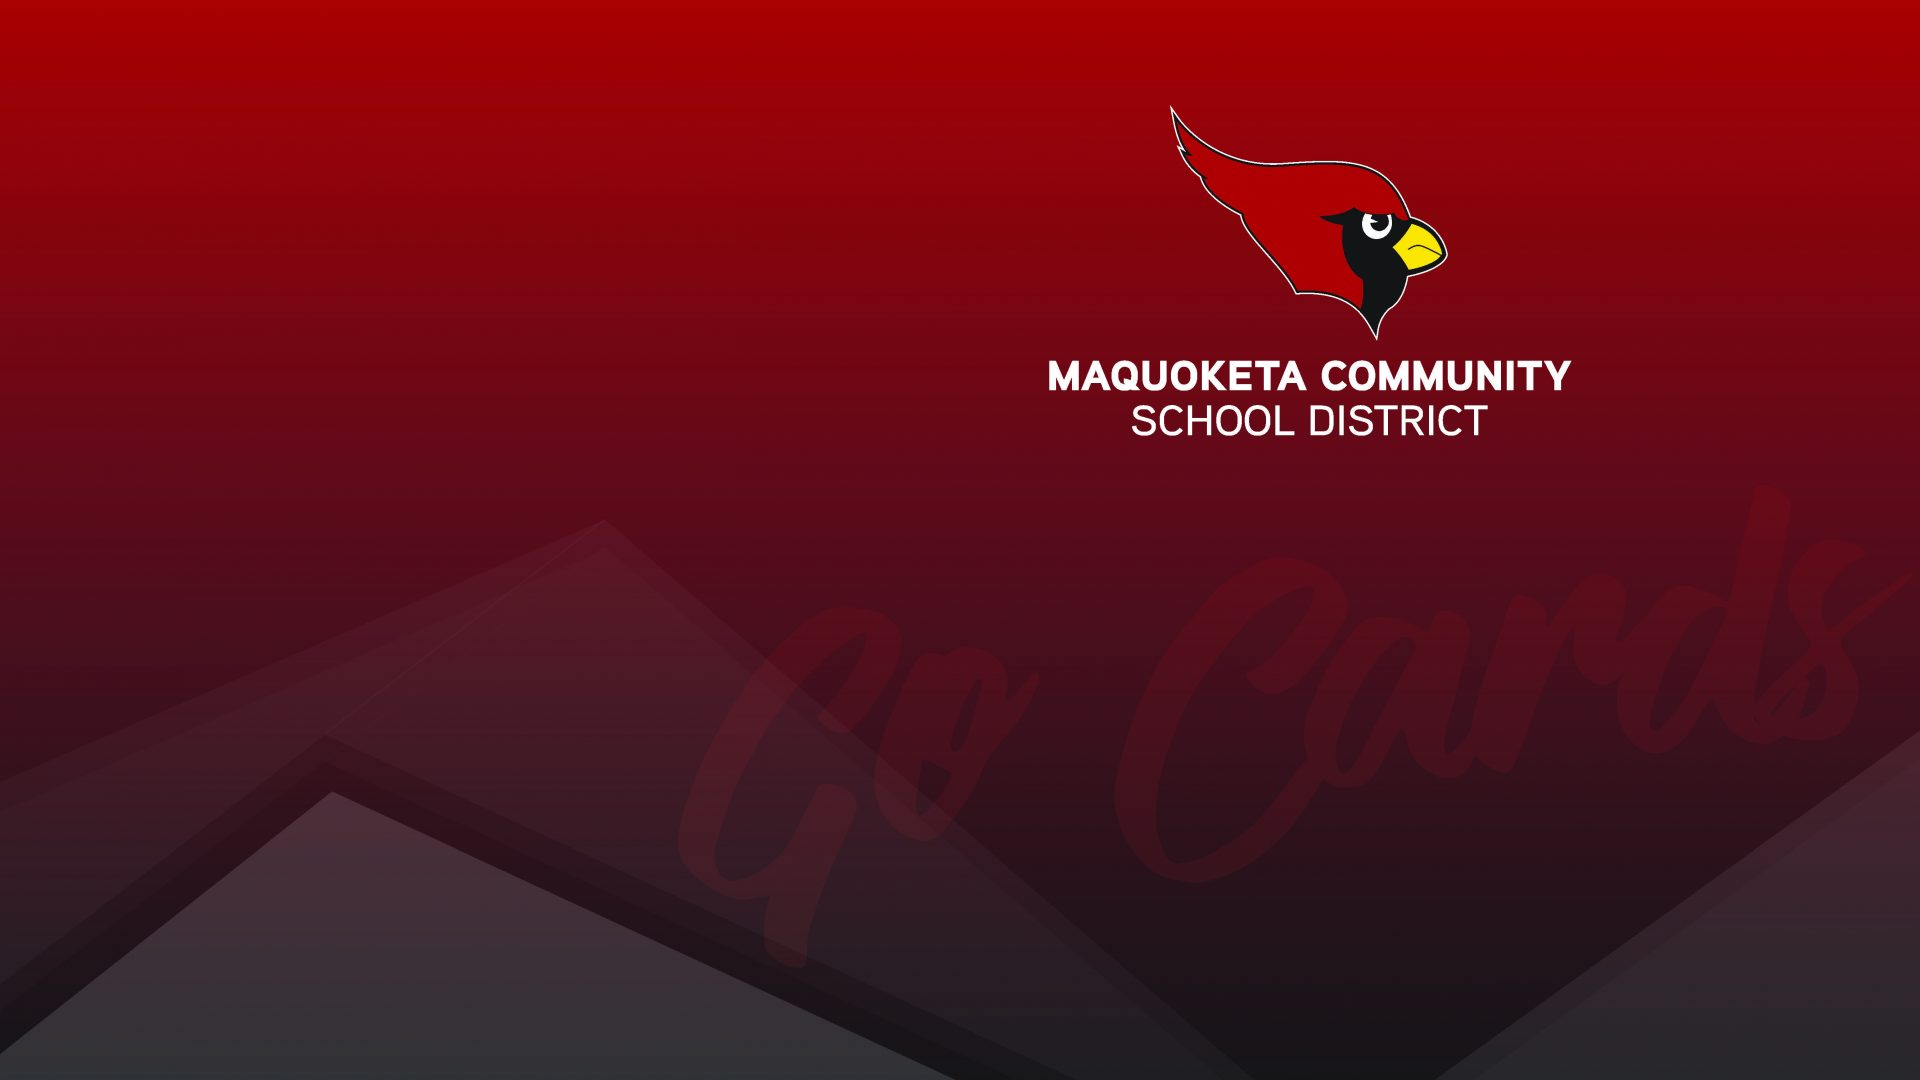 Maquoketa CSD - Desktop wallpaper